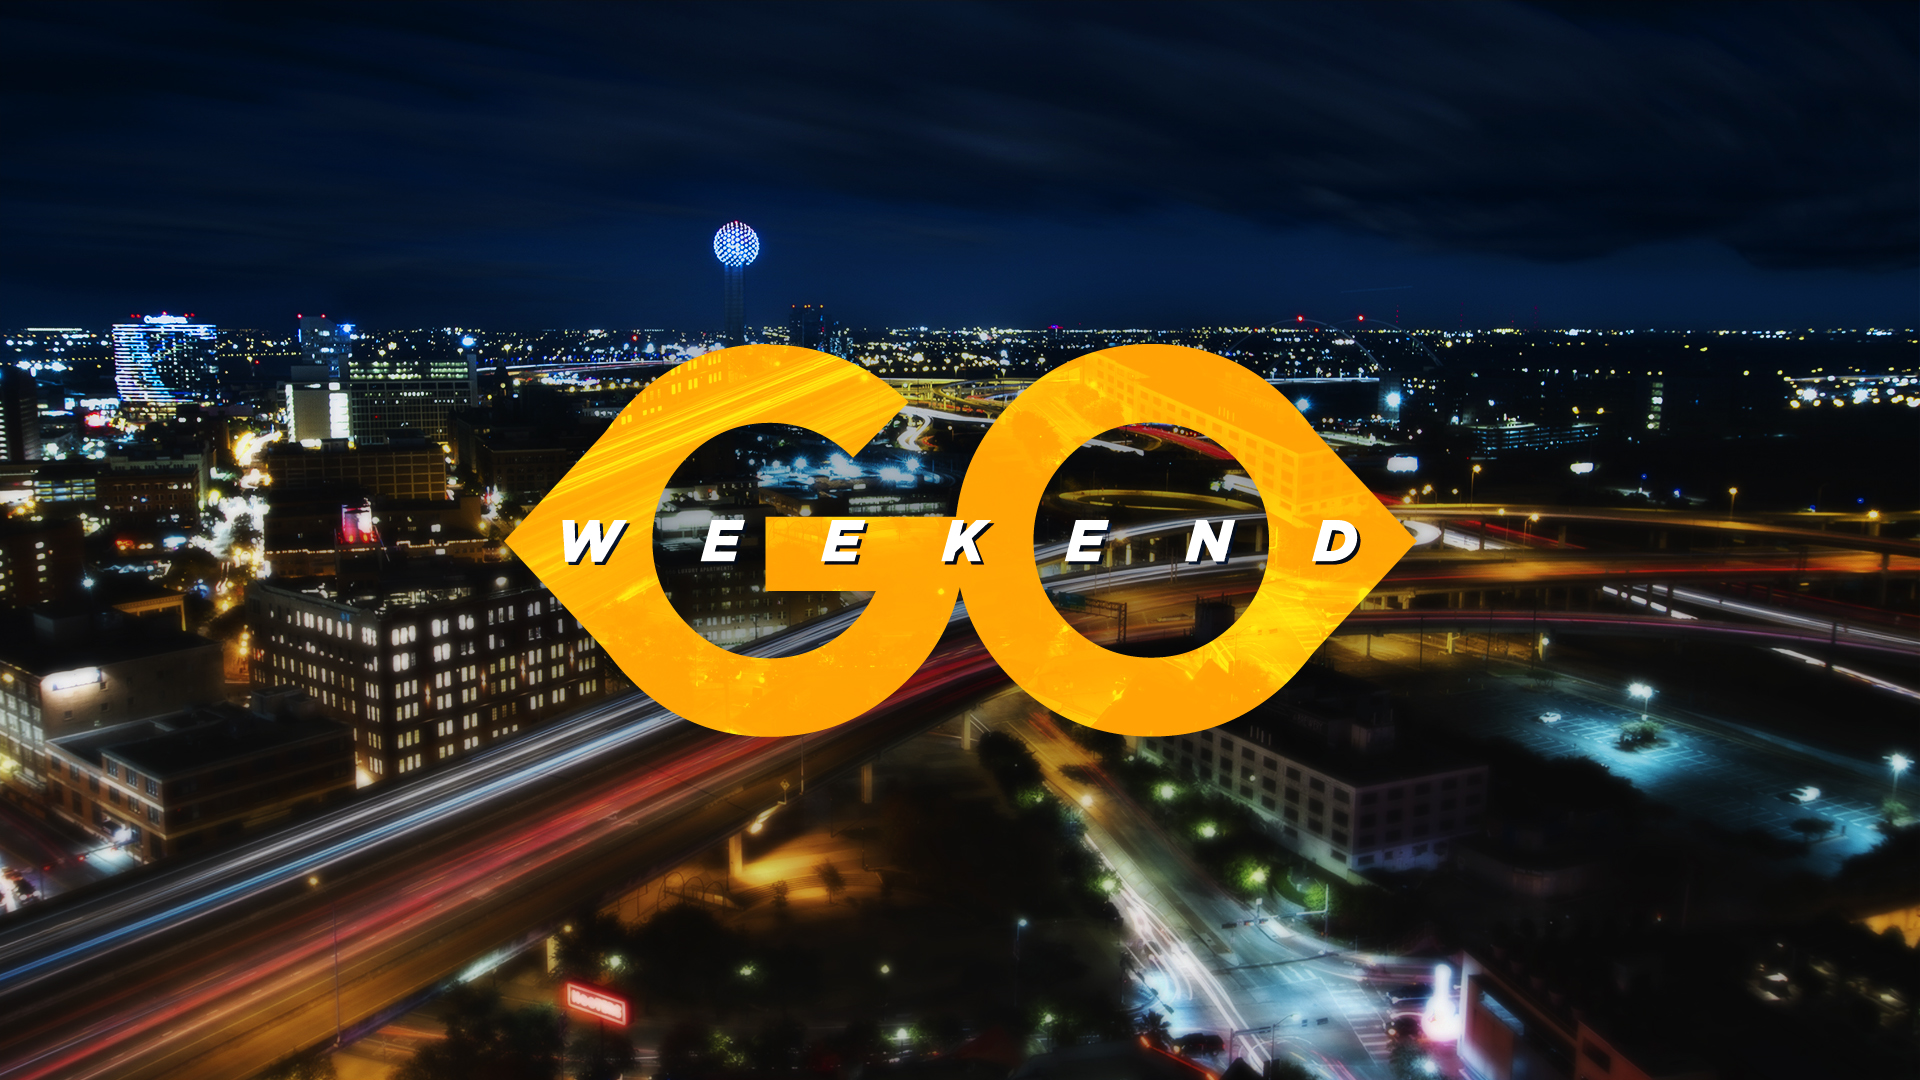 Go Weekend - David Platt